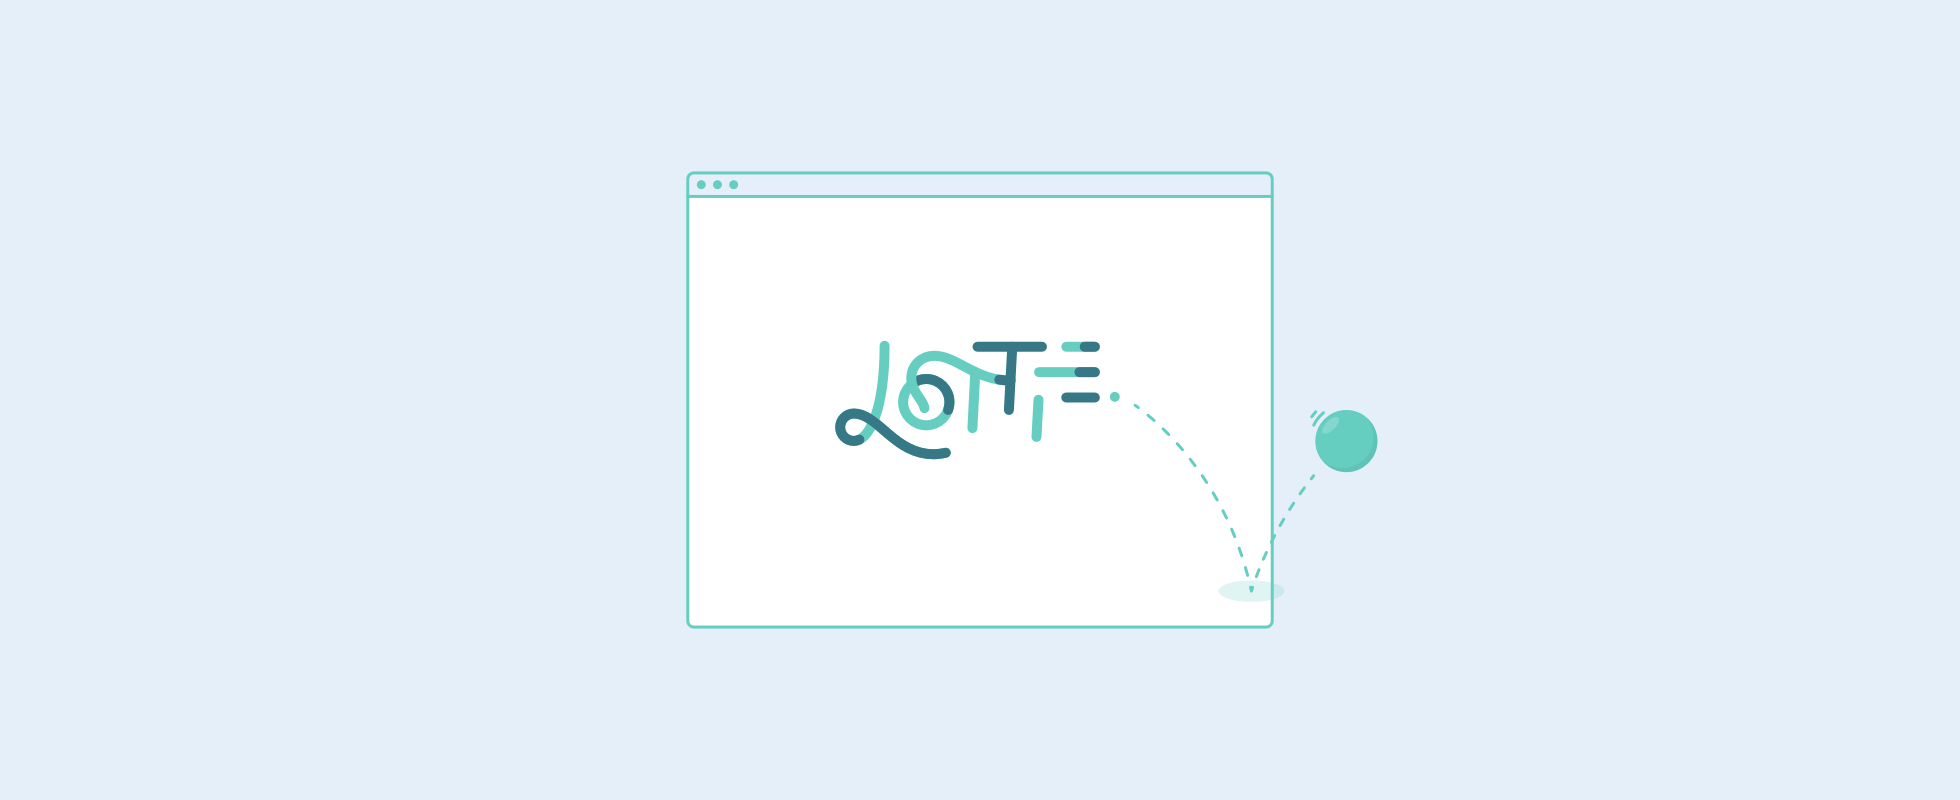 How to use web animations with Lottie